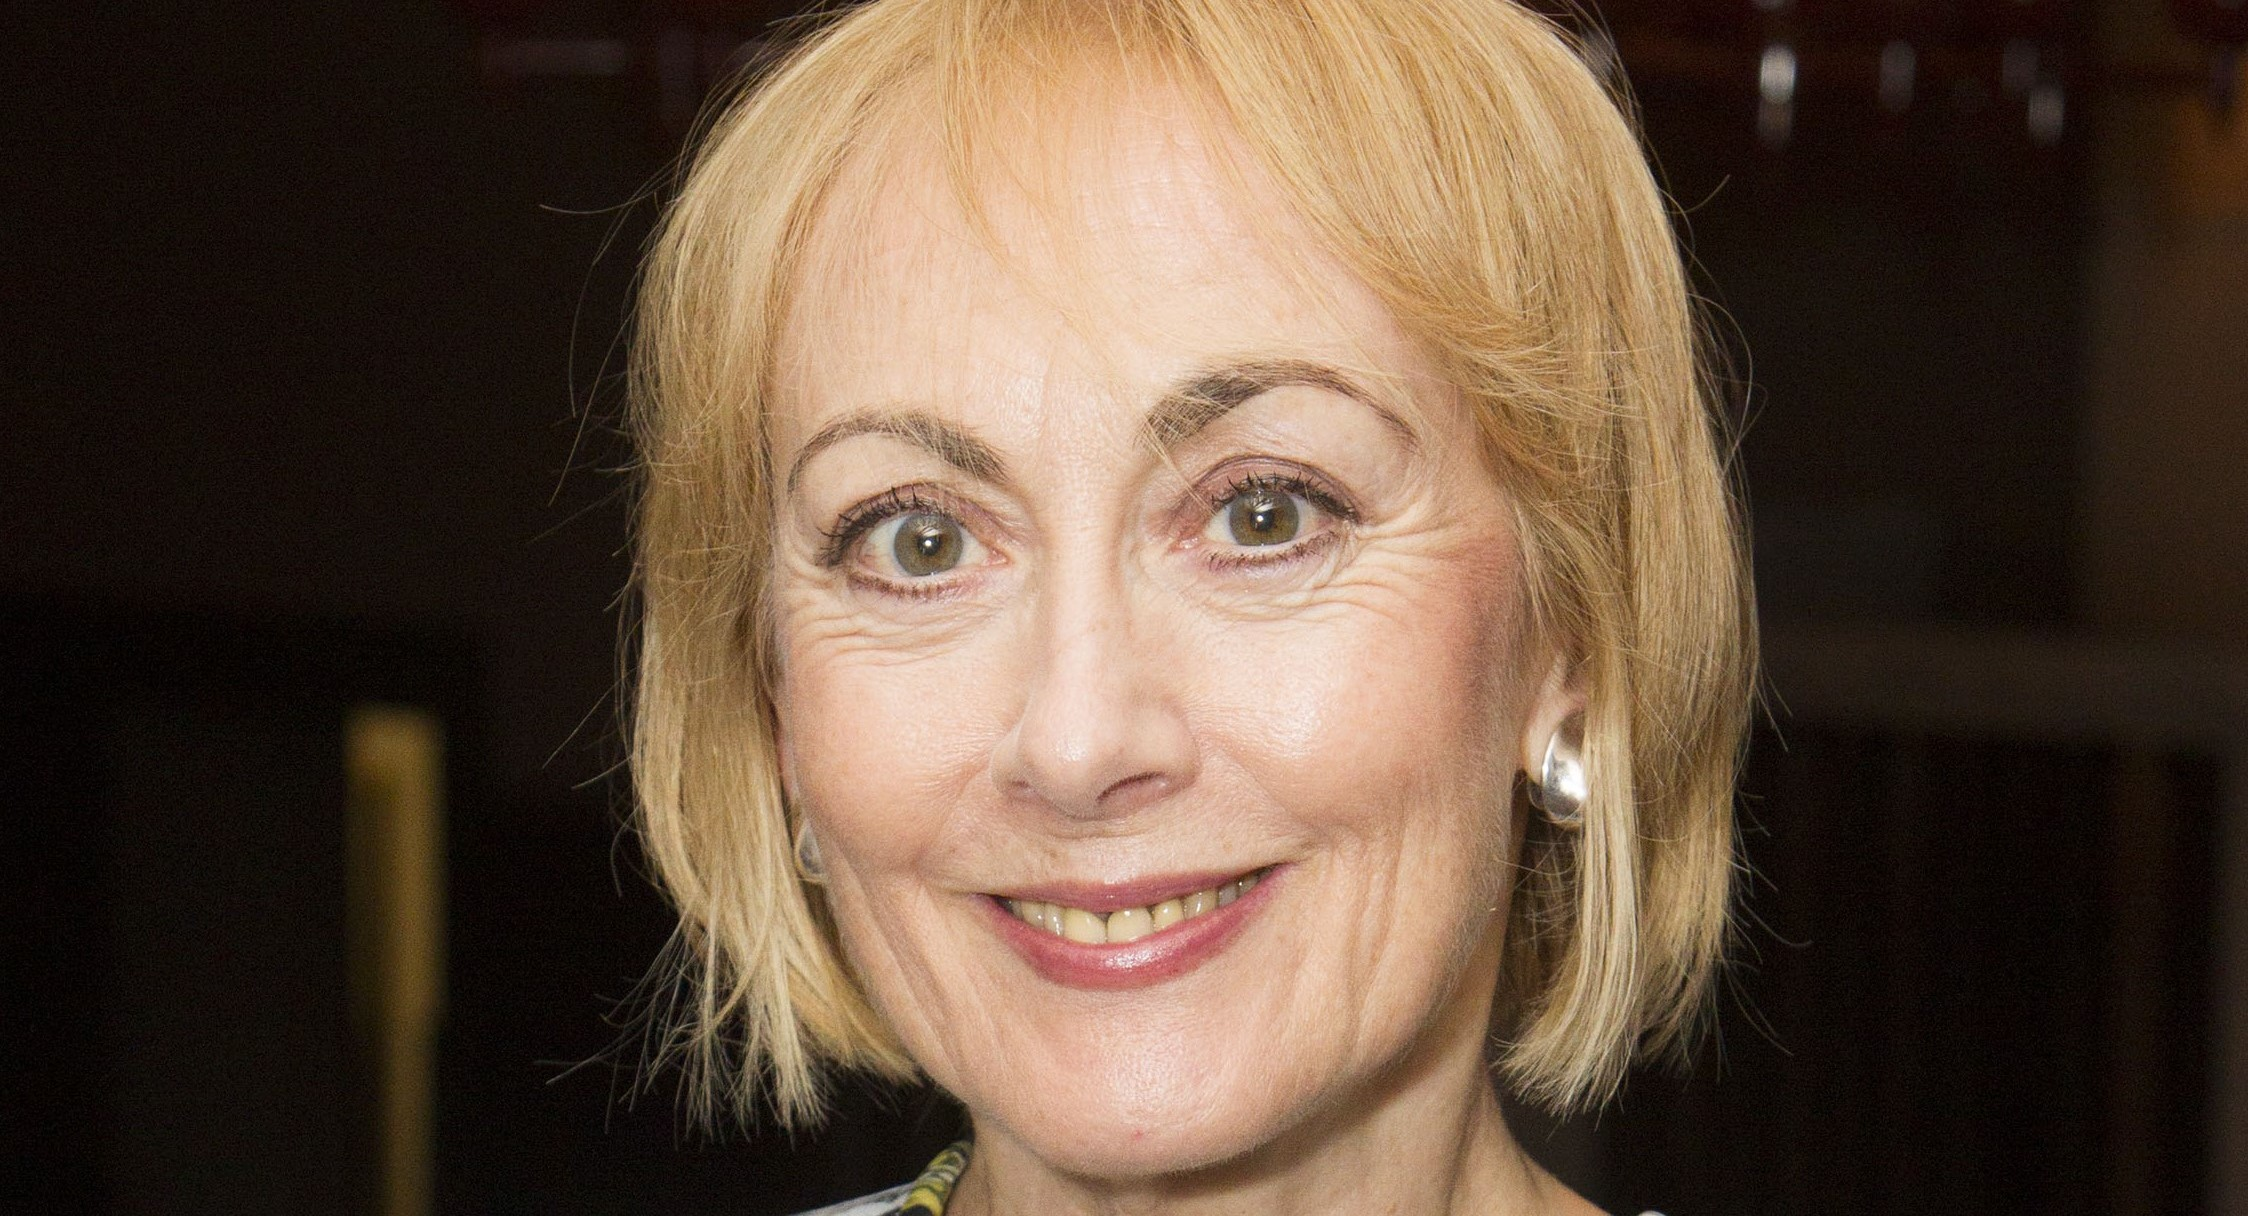 Paula Wilcox joining Coronation Street in guest role